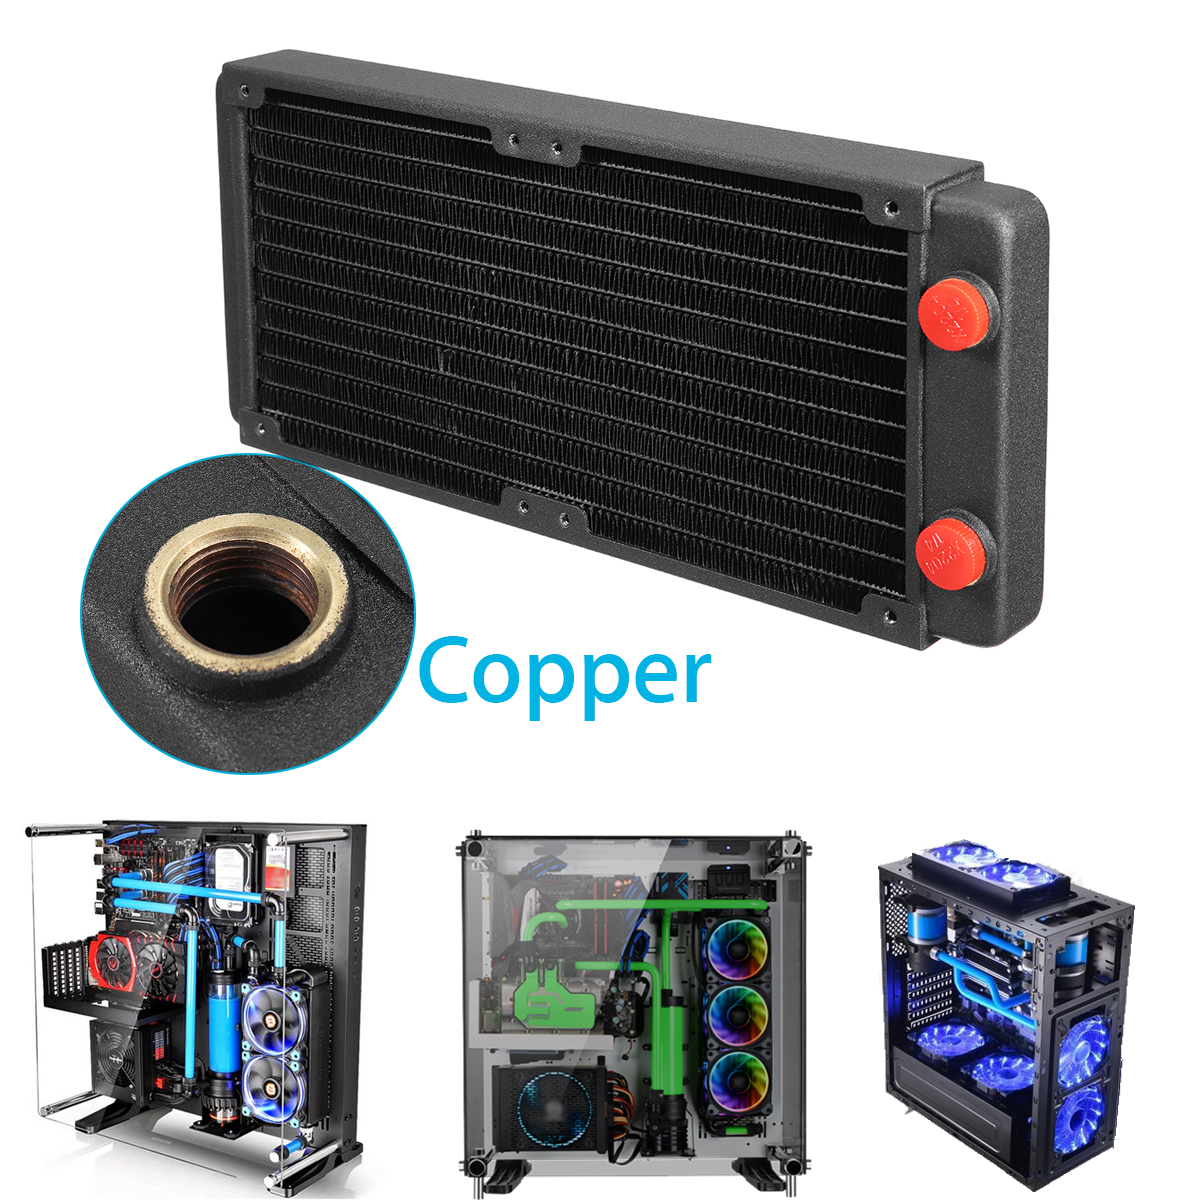 Copper Water Cooling 240mm Computer CPU Cooler Radiator Heatsink Radiator Exhaust Heat Exchanger Water Cooling Cooler 18mm 20mm 21mm 22mm new mens black brown alligator leather watch strap band deployment watch buckle